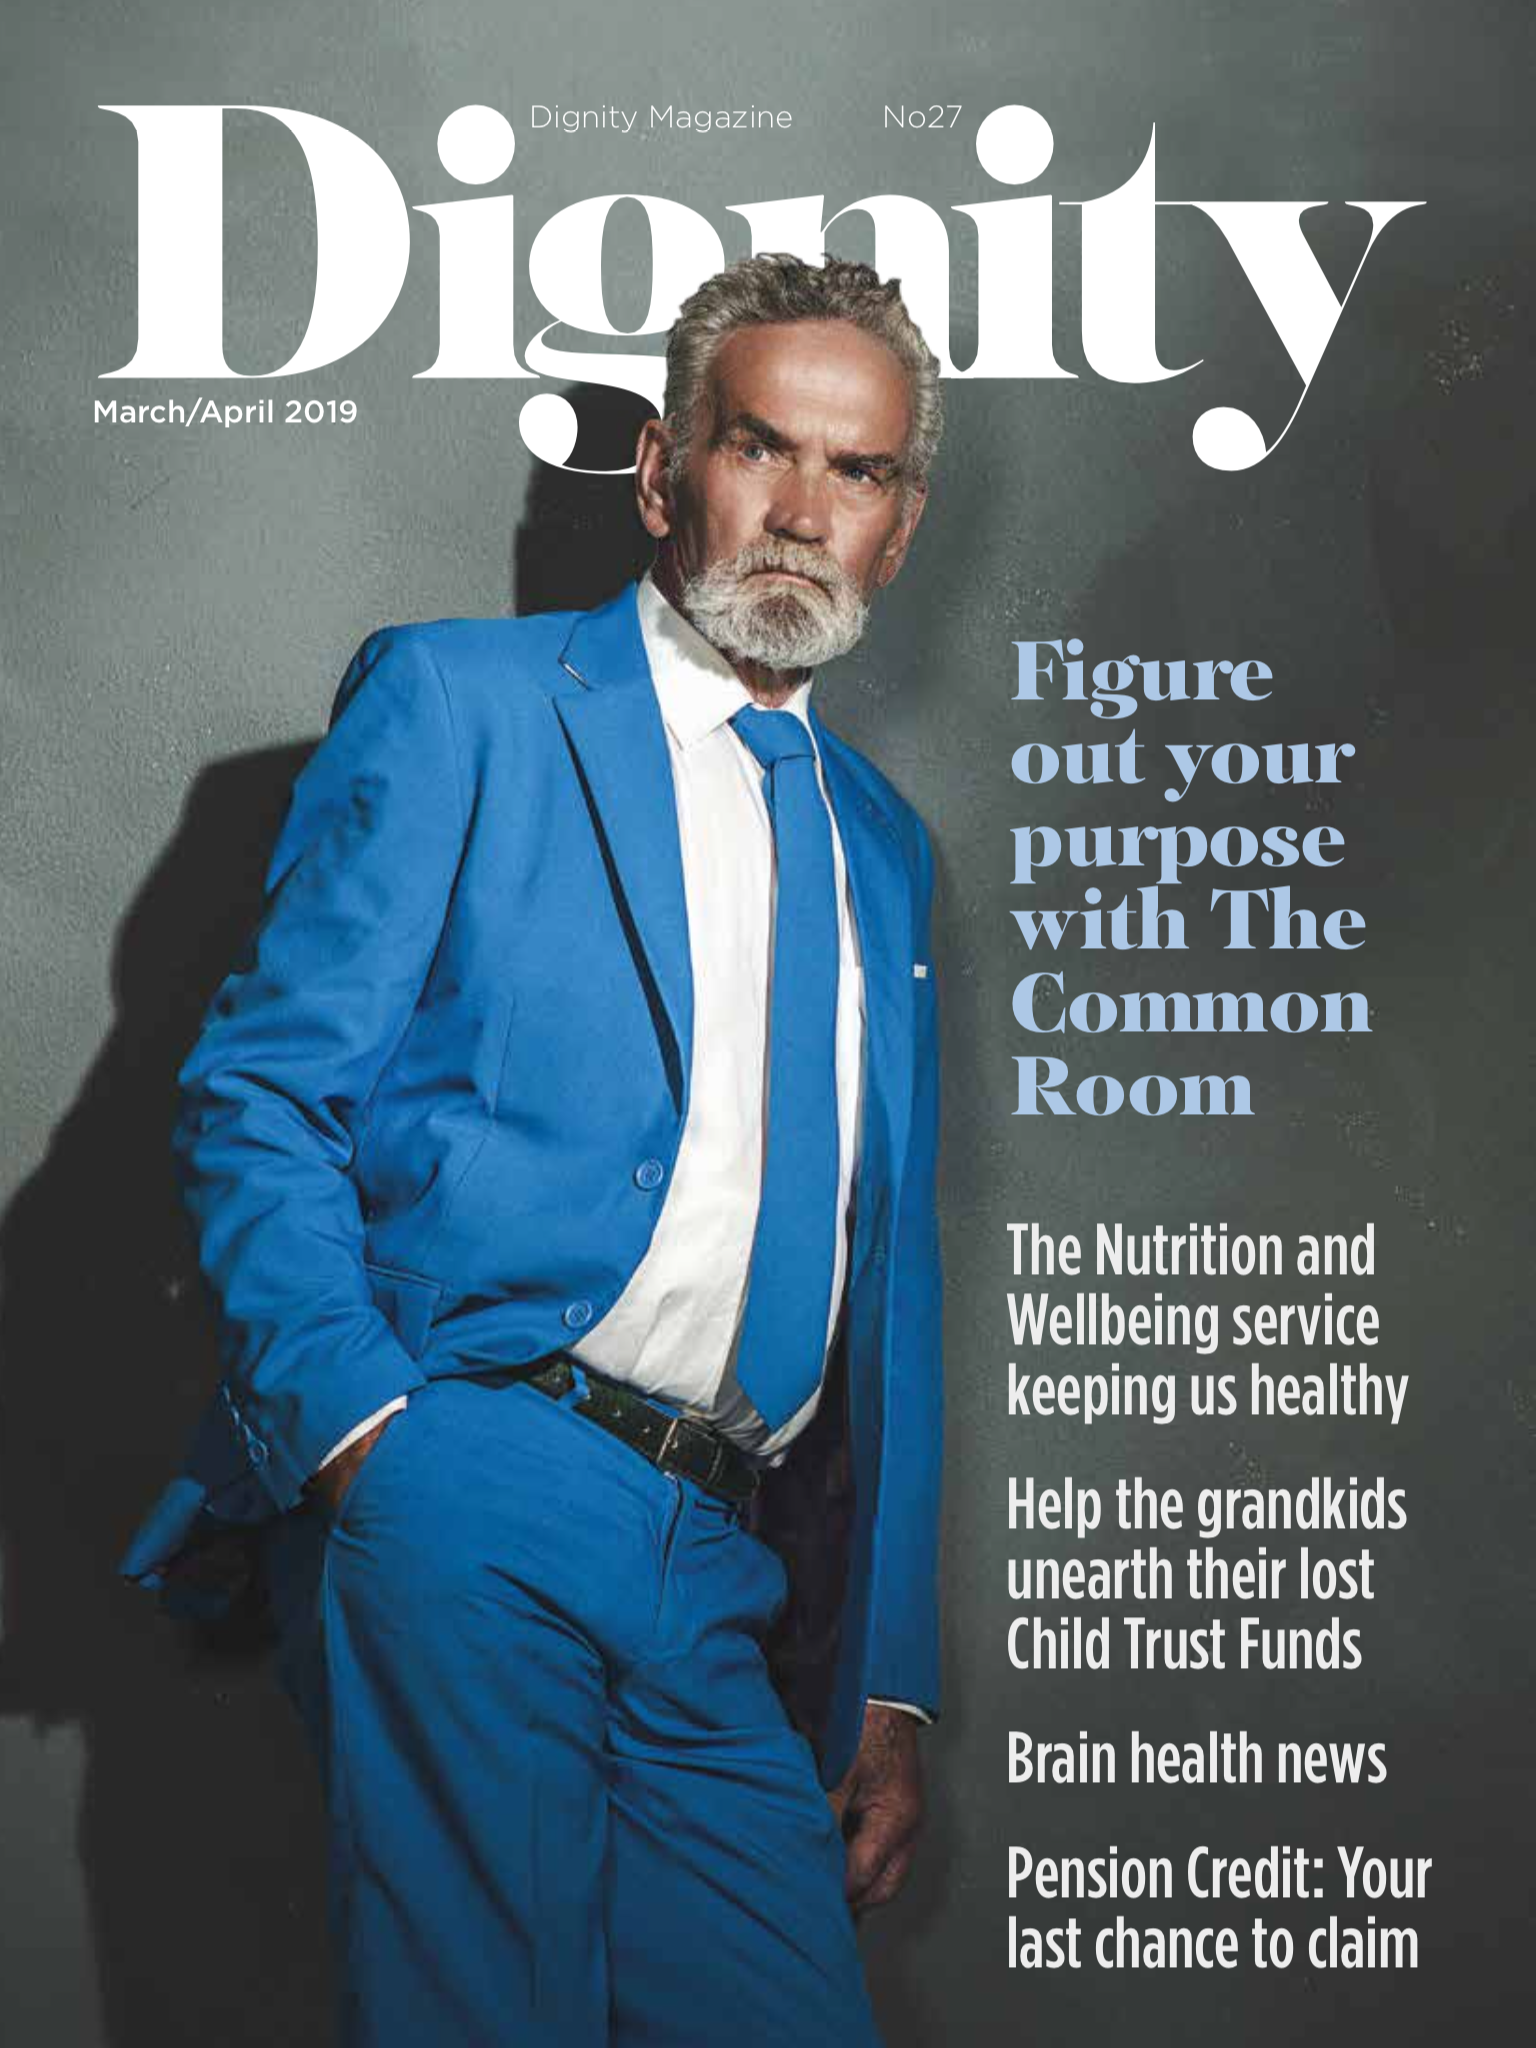 New Homes Act covered in Issue 27 of Dignity Magazine.